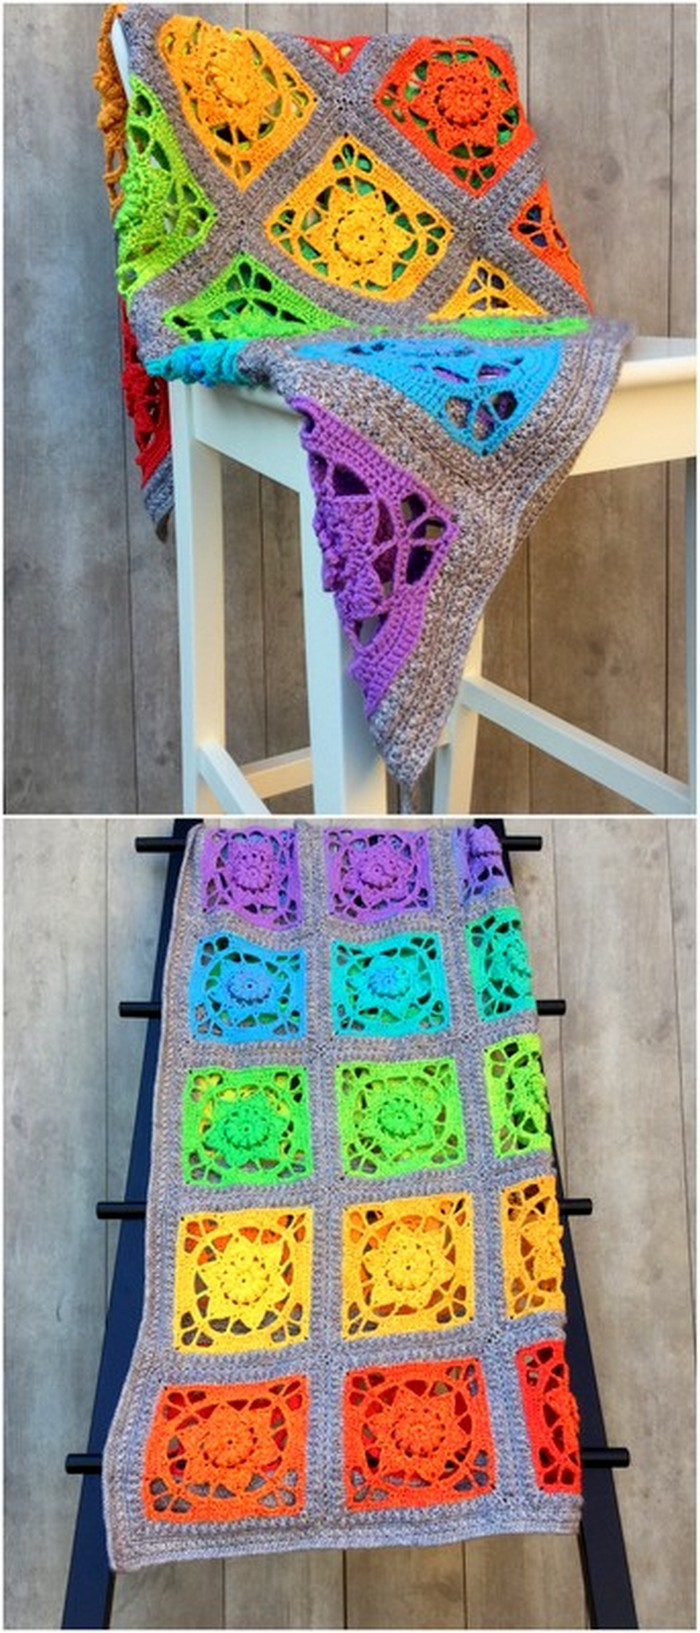 Simple crochet Chair Cover Free crochet pattern